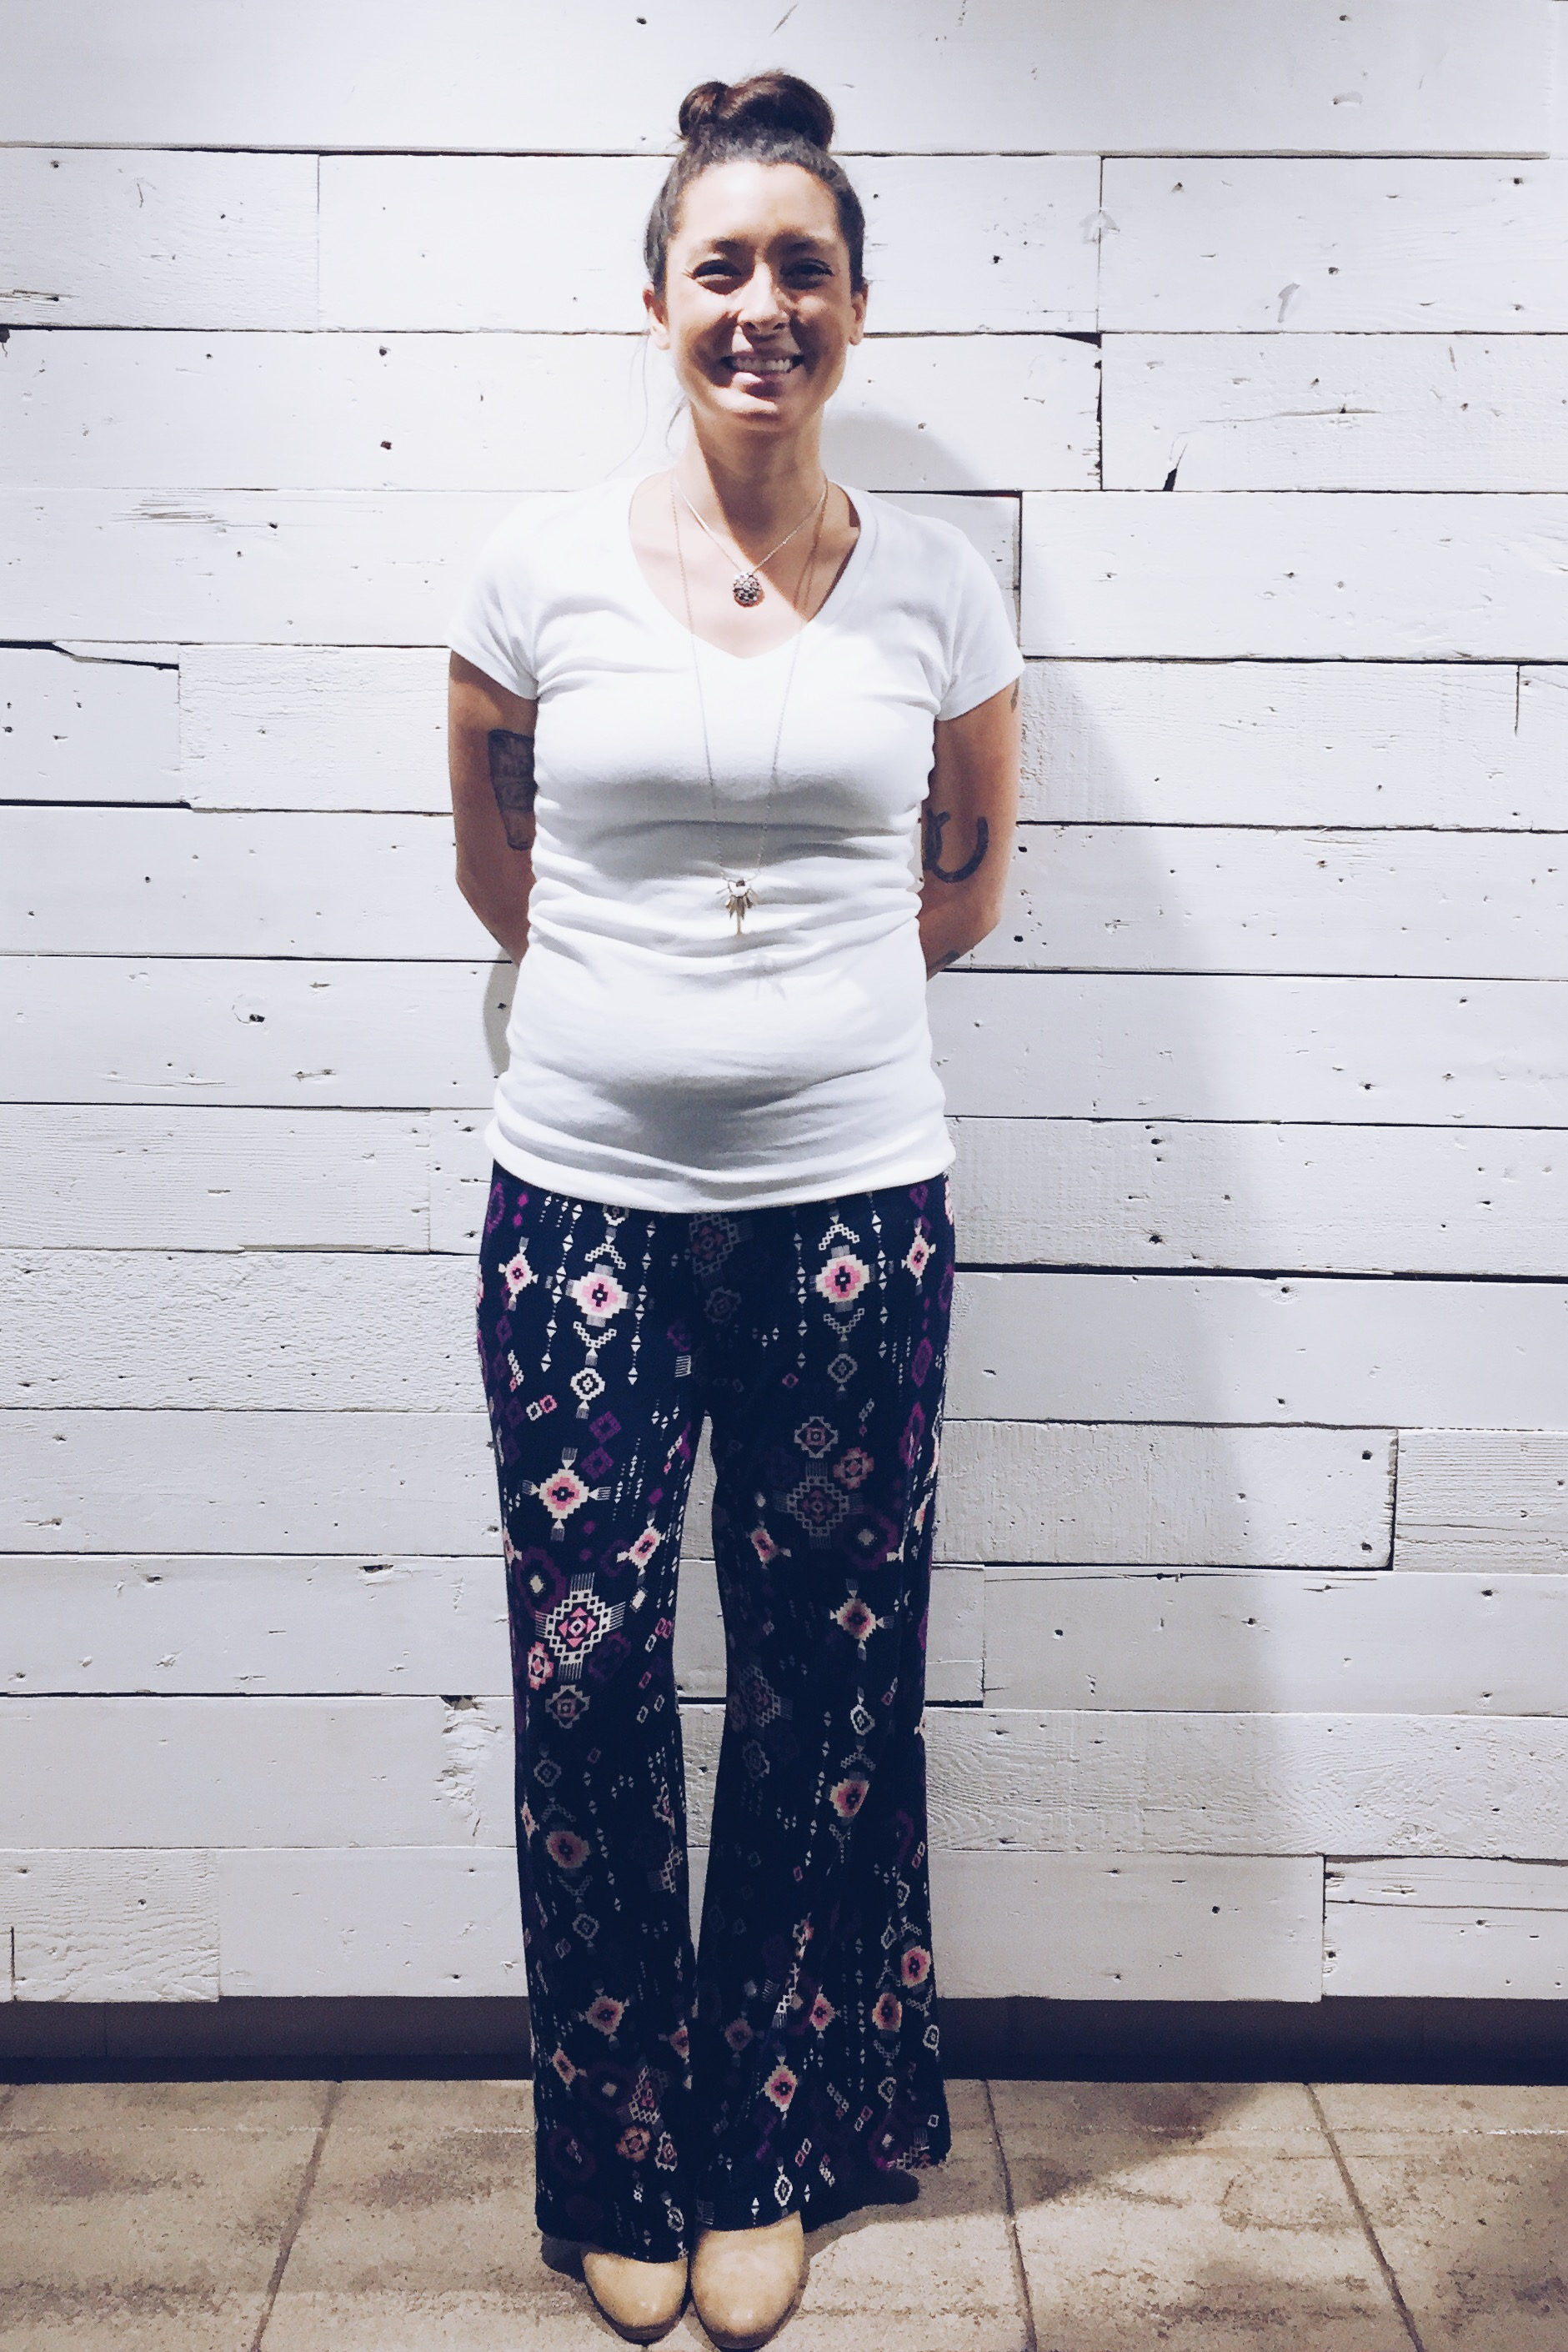 Alie Jepson and her 'Baby Bump'